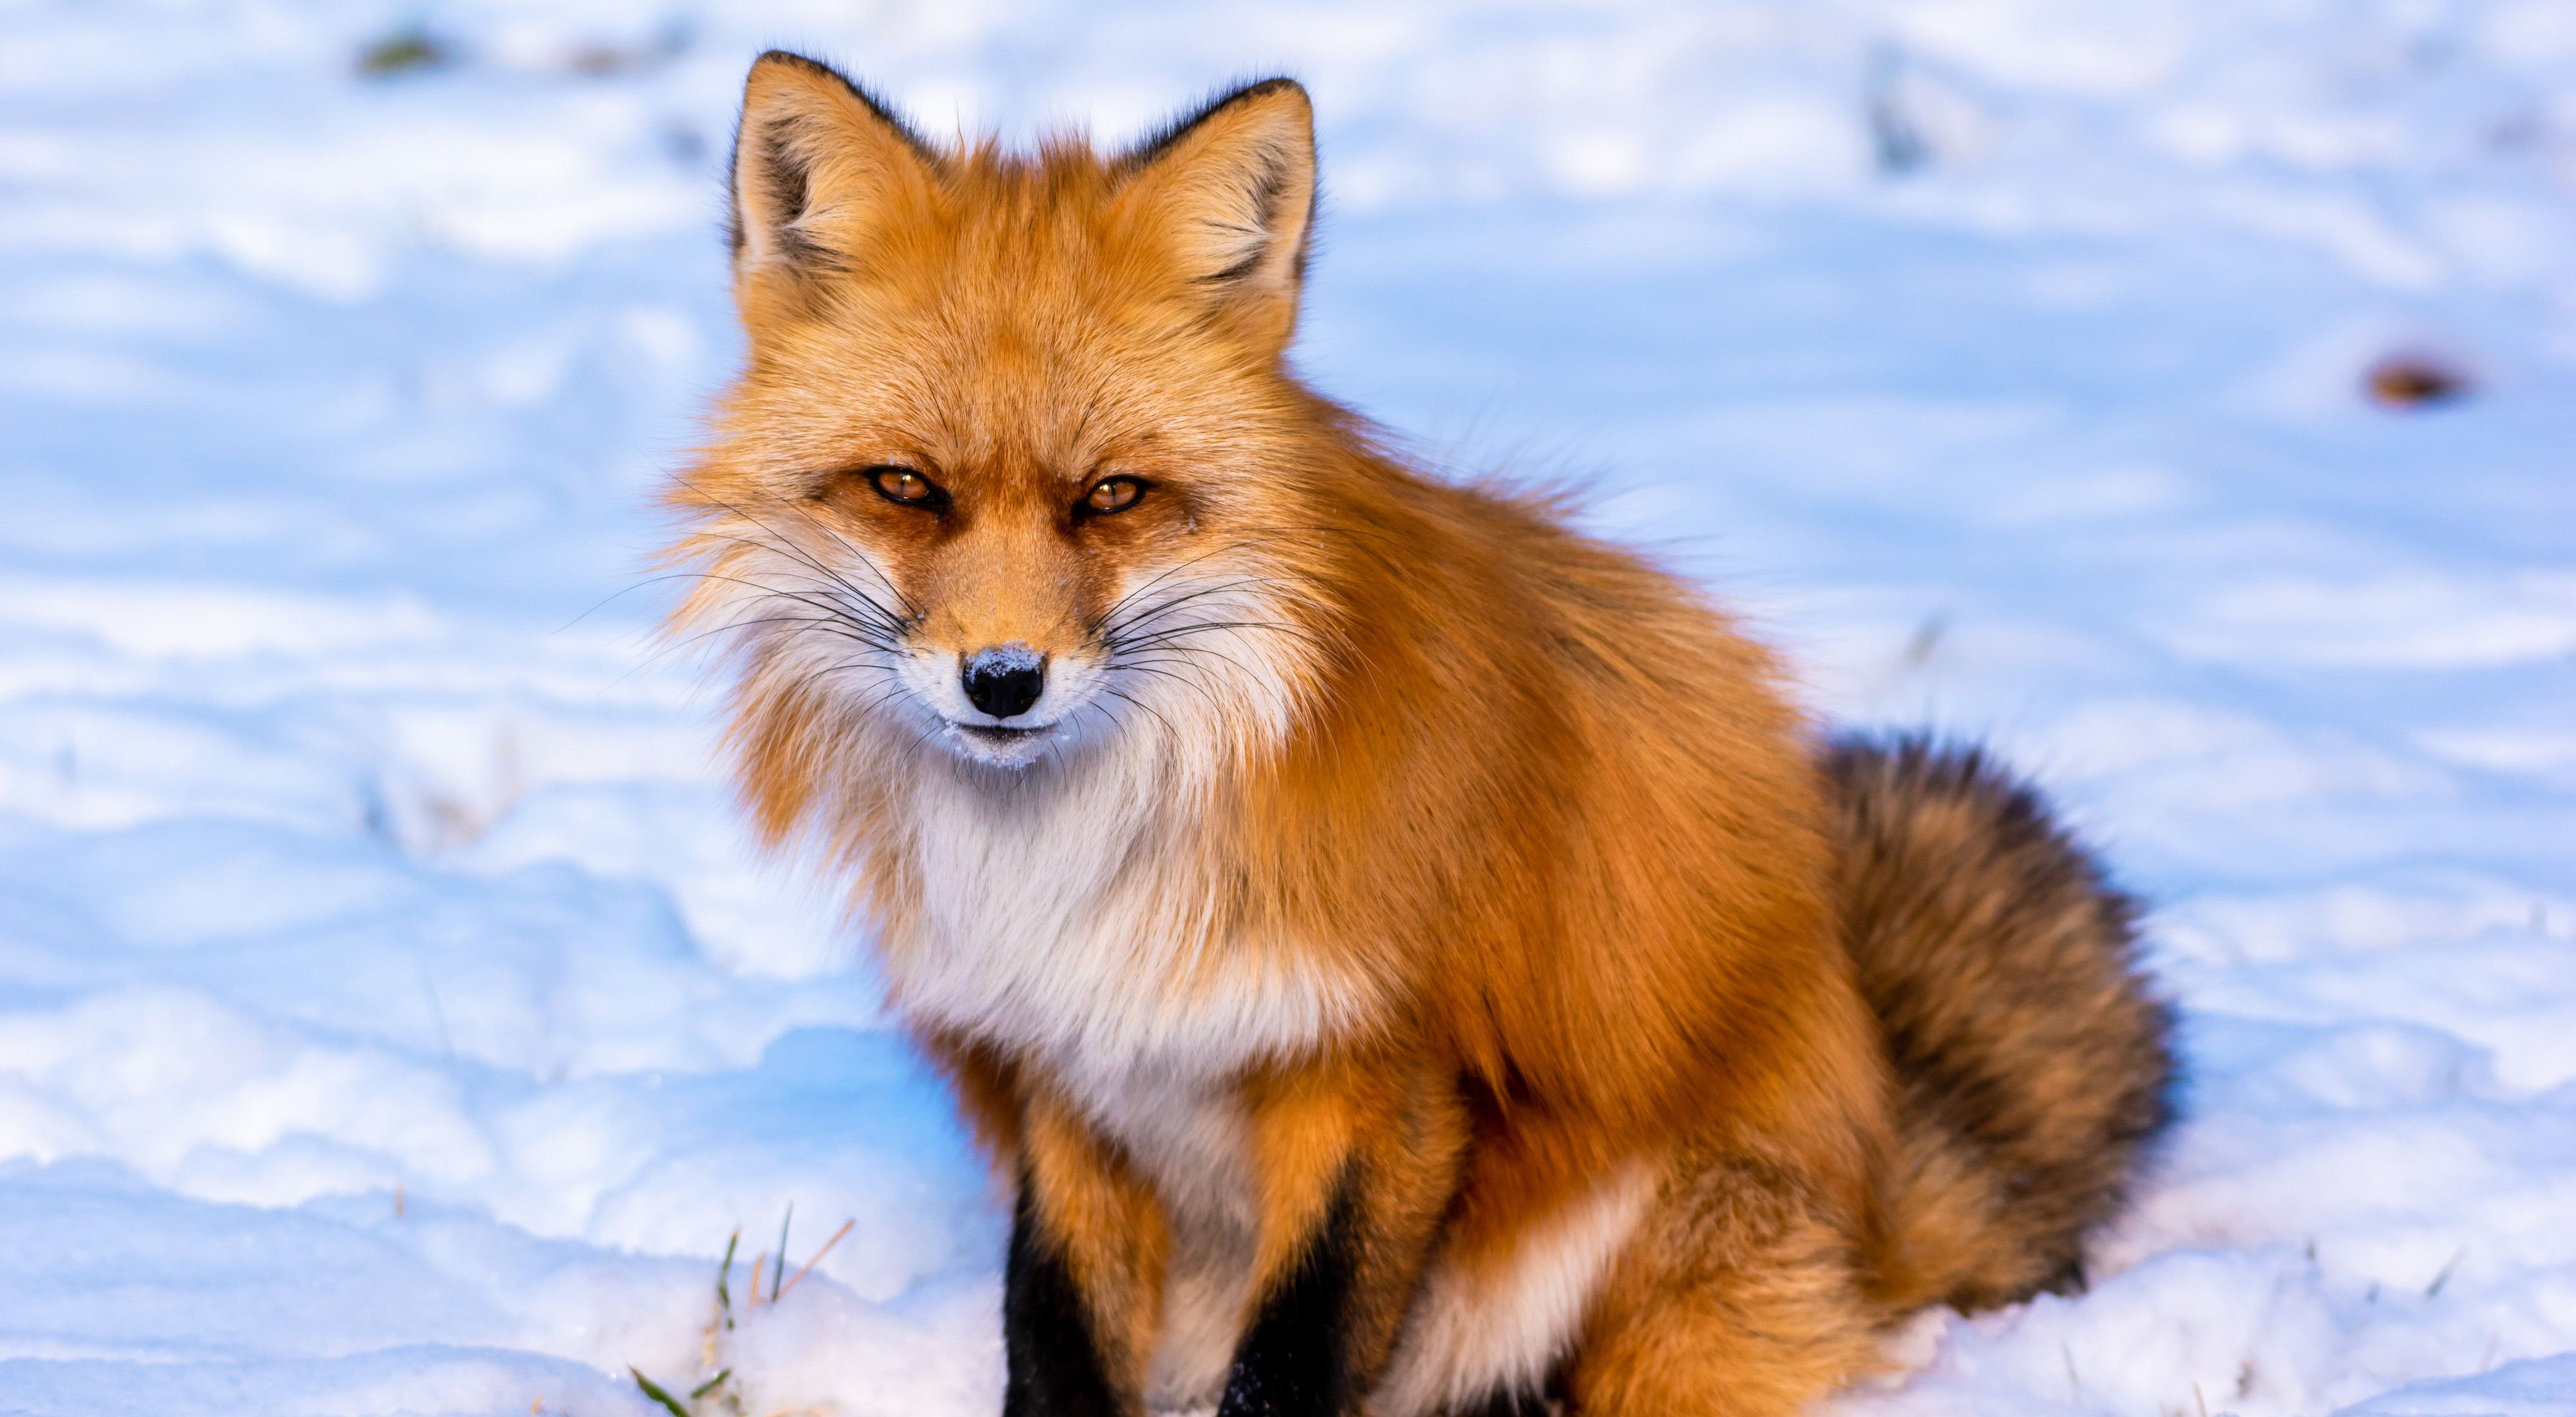 A fox in the snow looking at the camera.